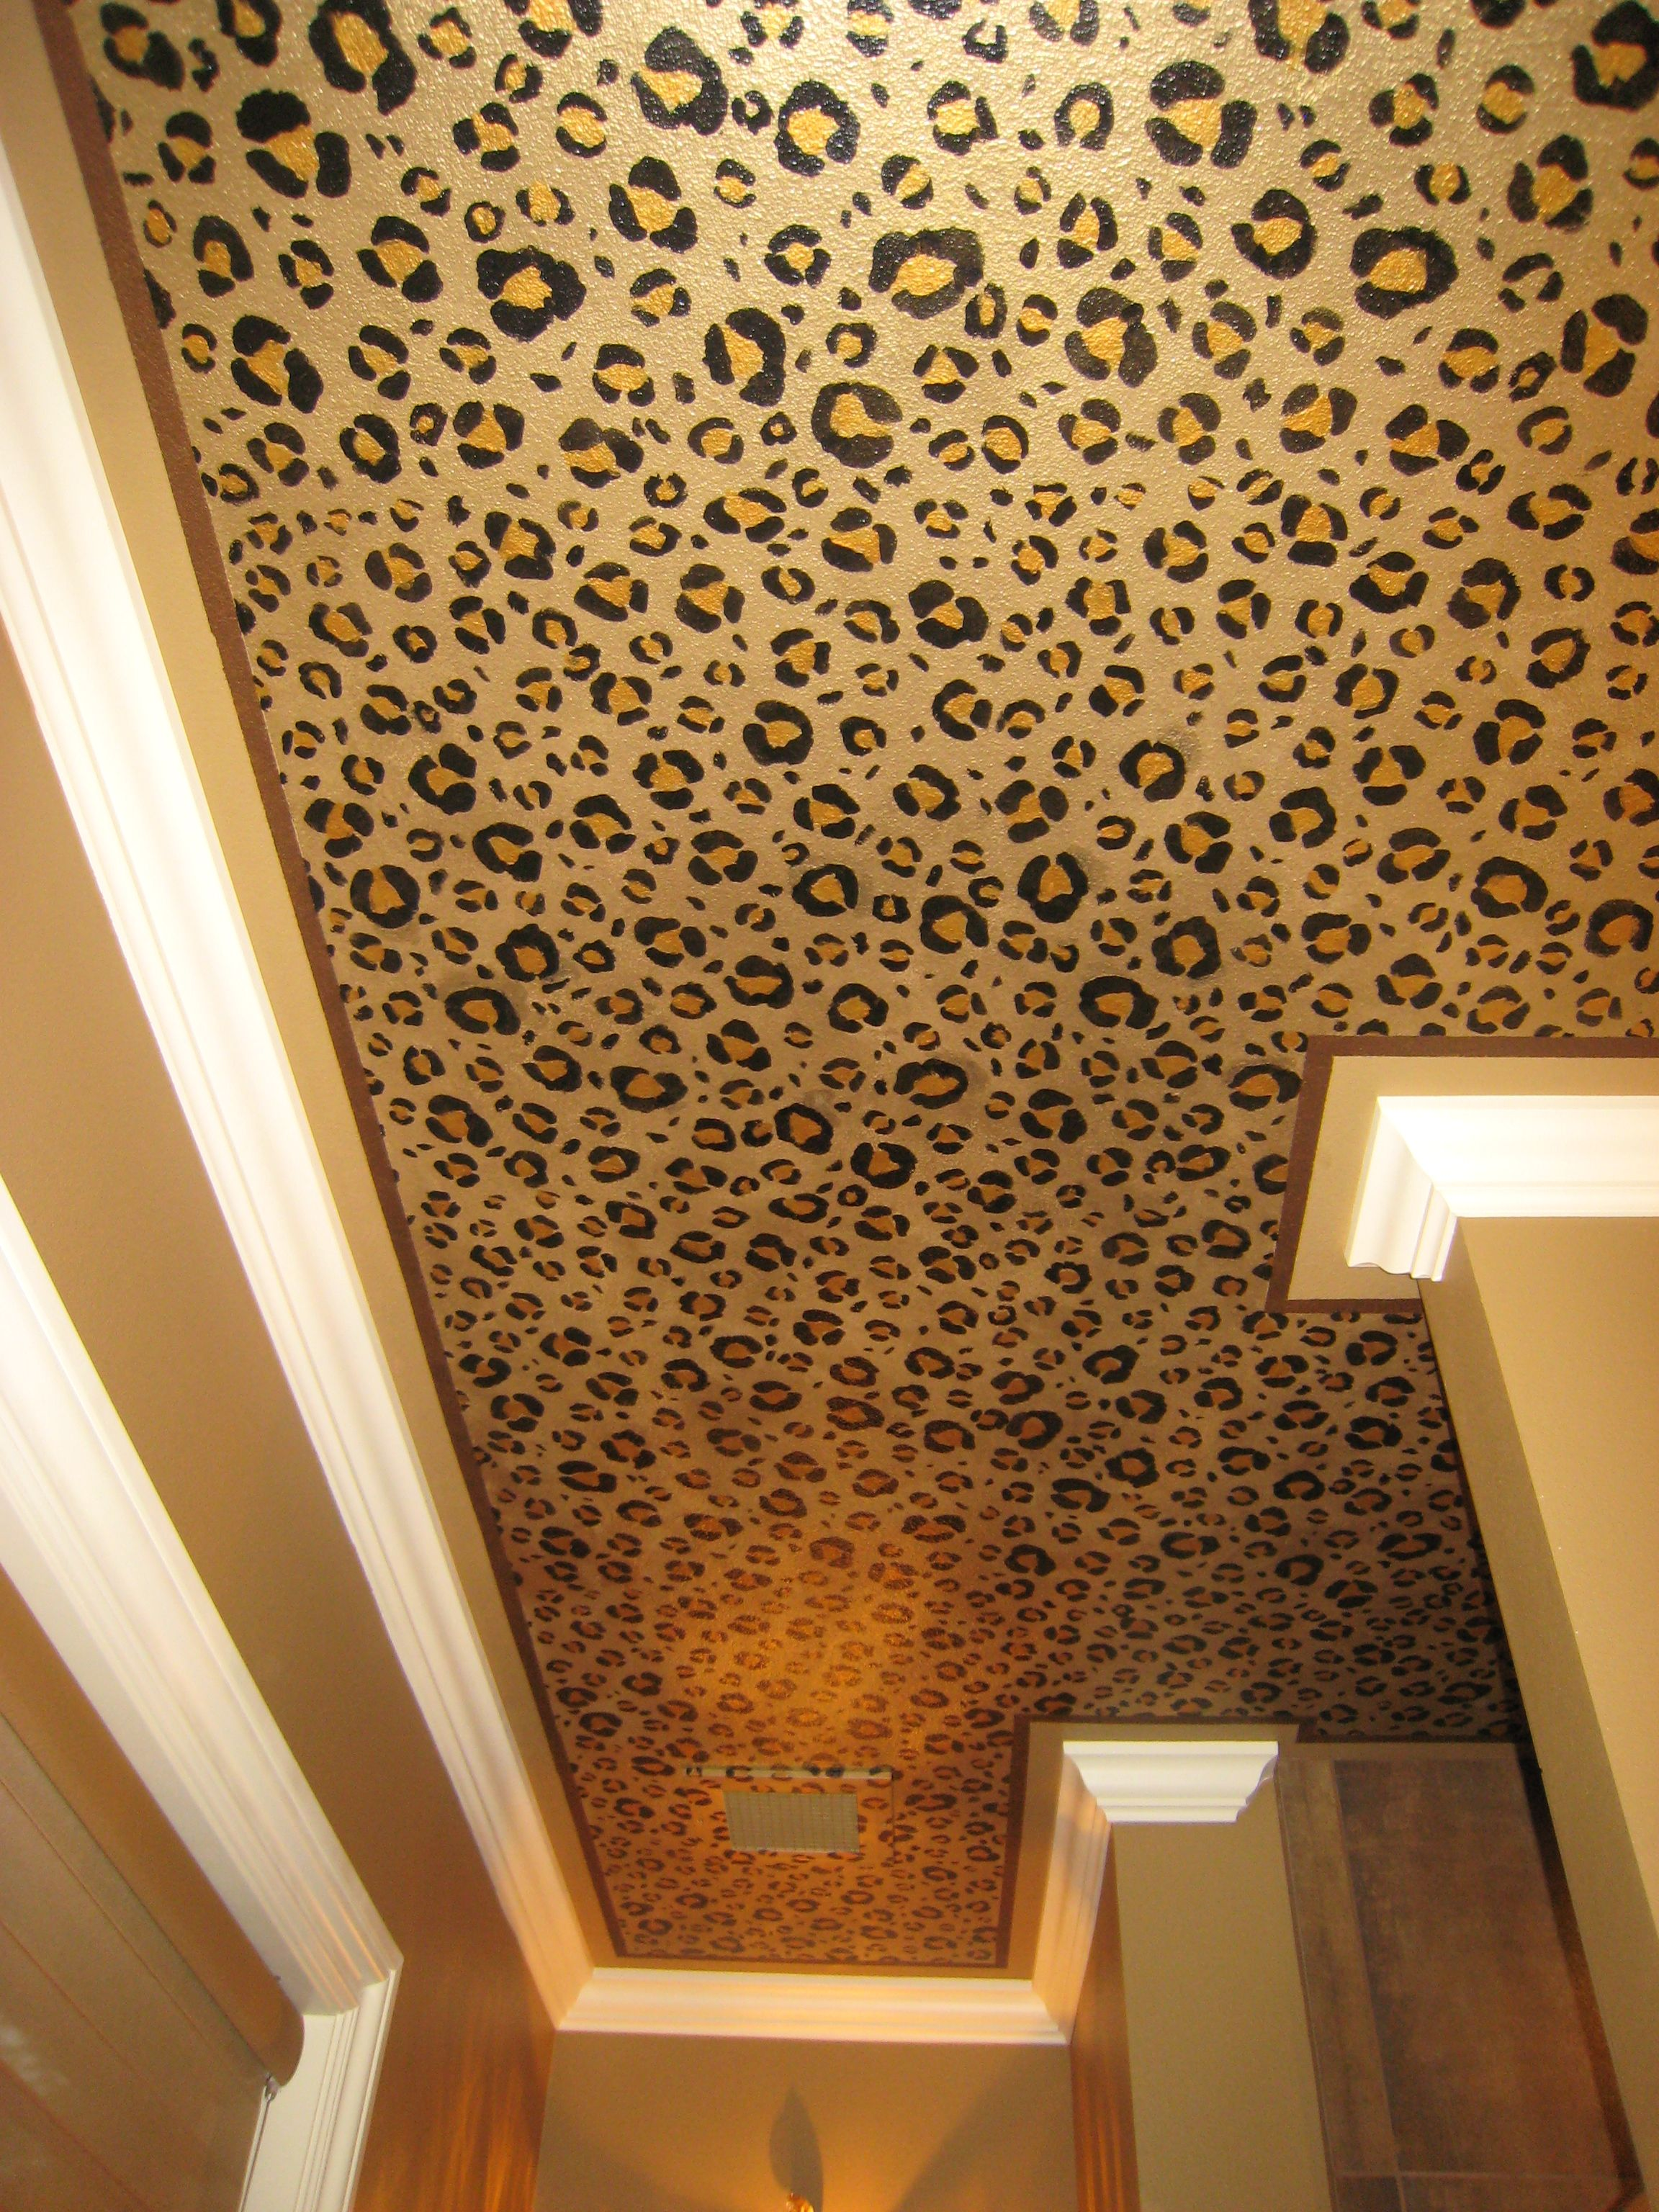 Best Leopard Ceiling Love Decor Leopard Wall Leopard 400 x 300